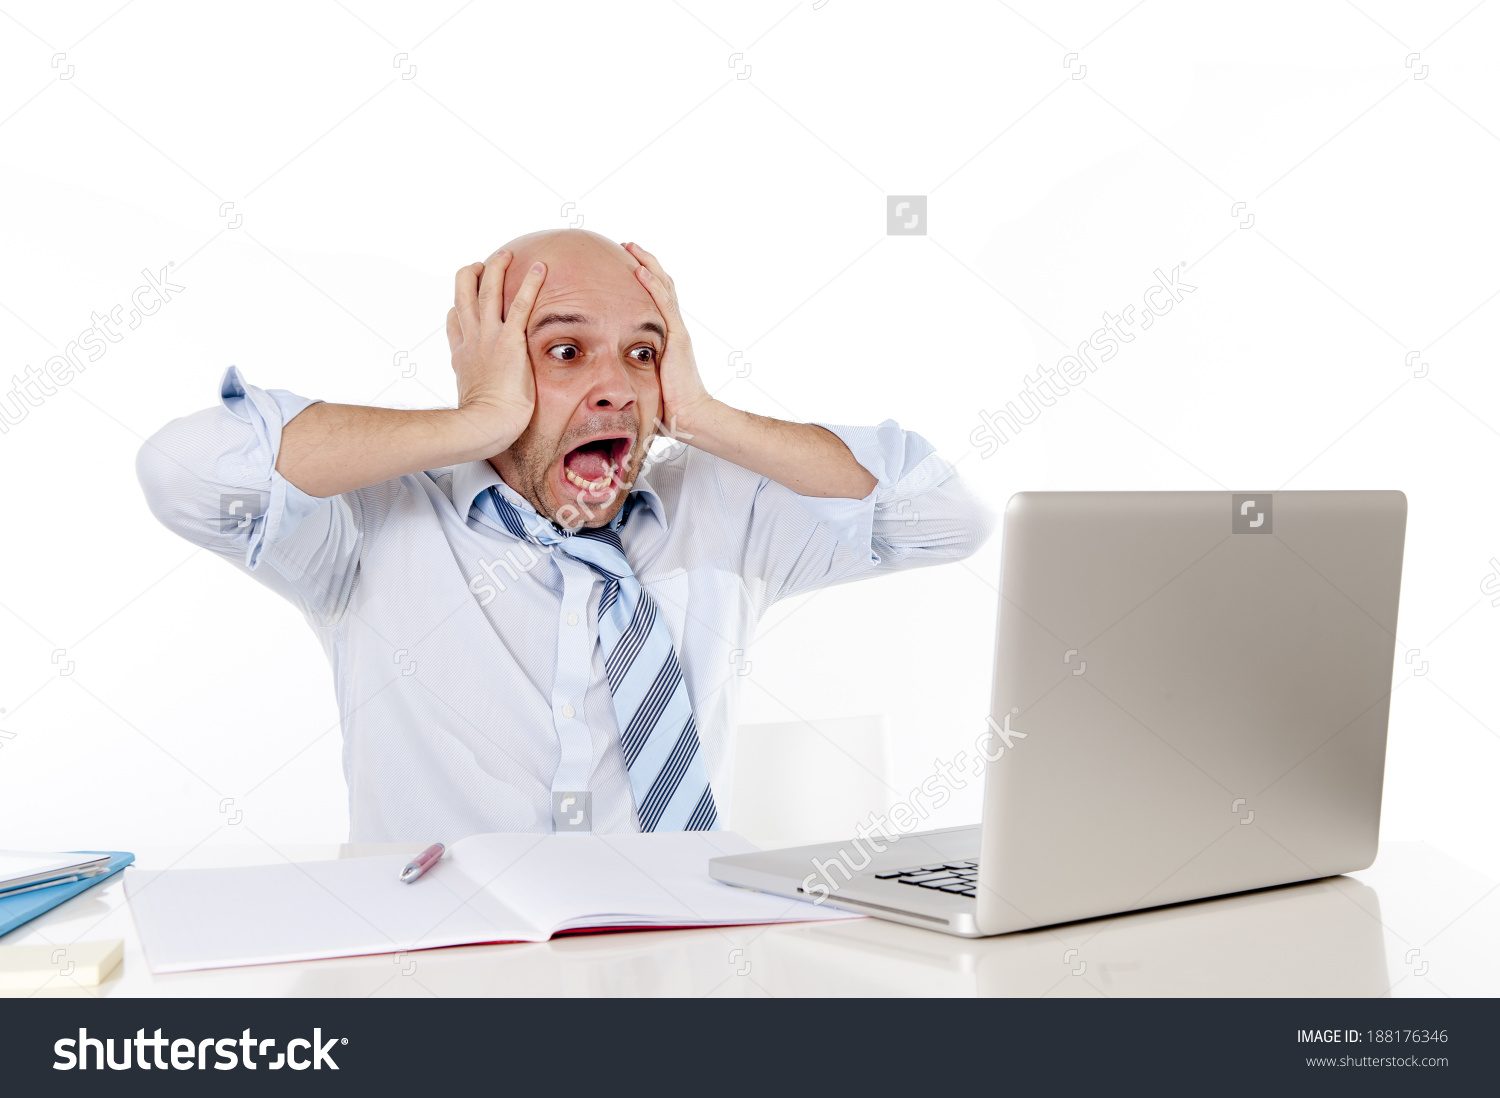 stock-photo-attractive-young-bald-business-man-screaming-in-crisis-stress-and-frustration-at-computer-from-188176346